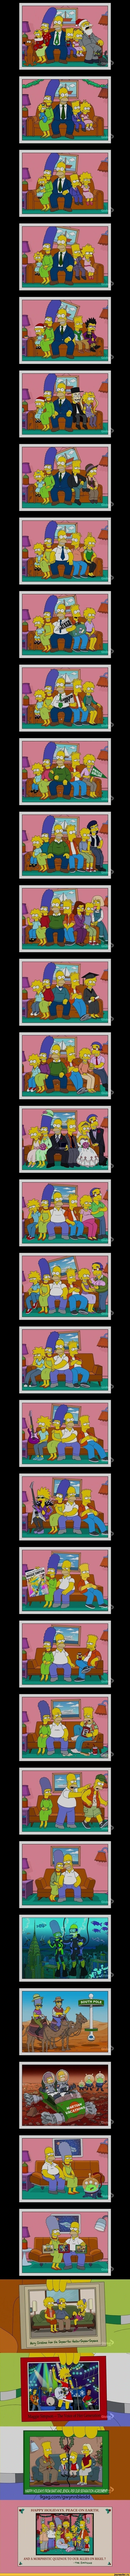 75 best The Simpsons images on Pinterest